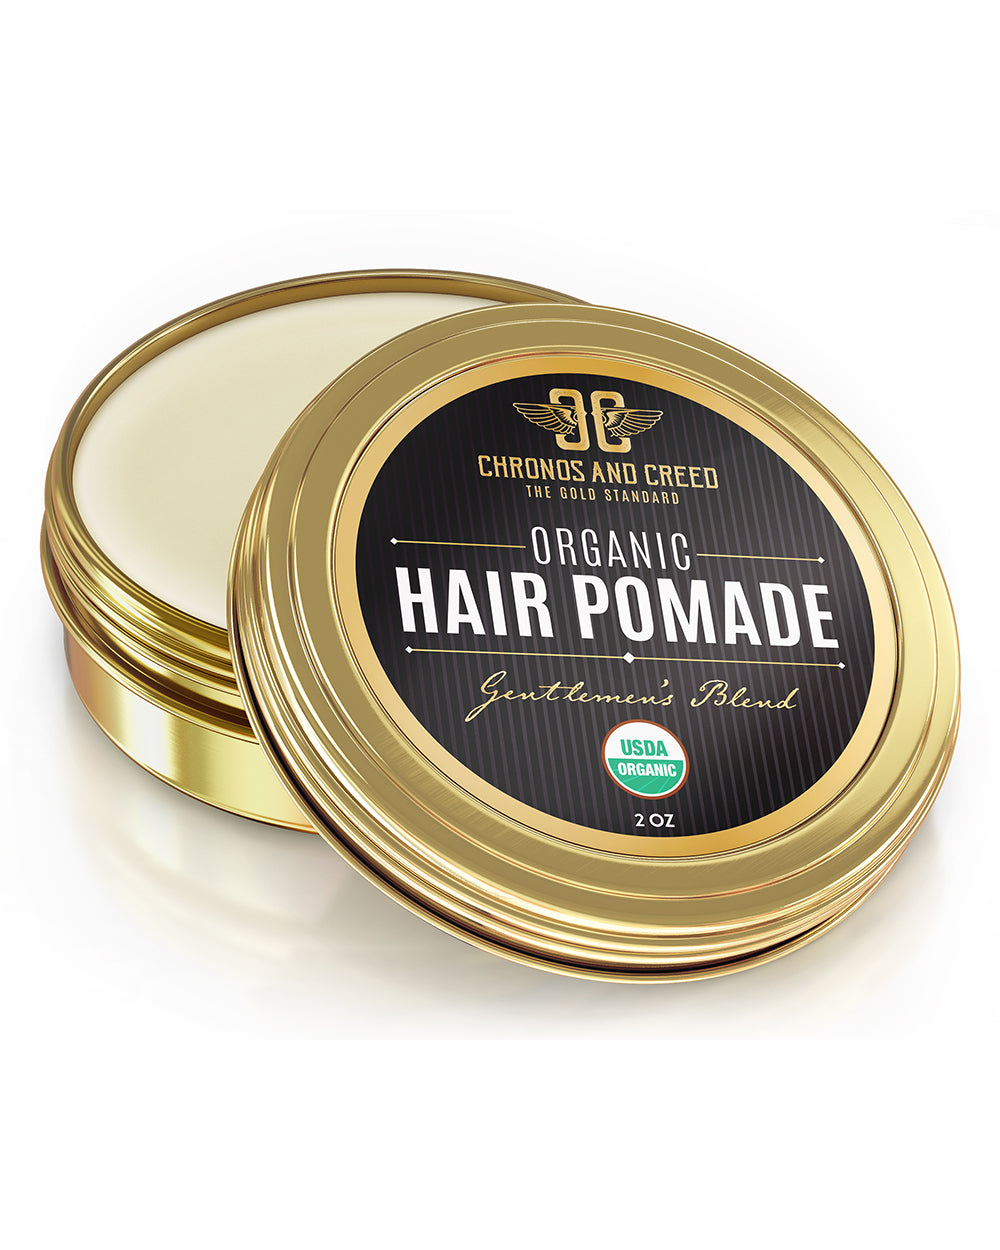 USDA Certified Organic Hair Pomade